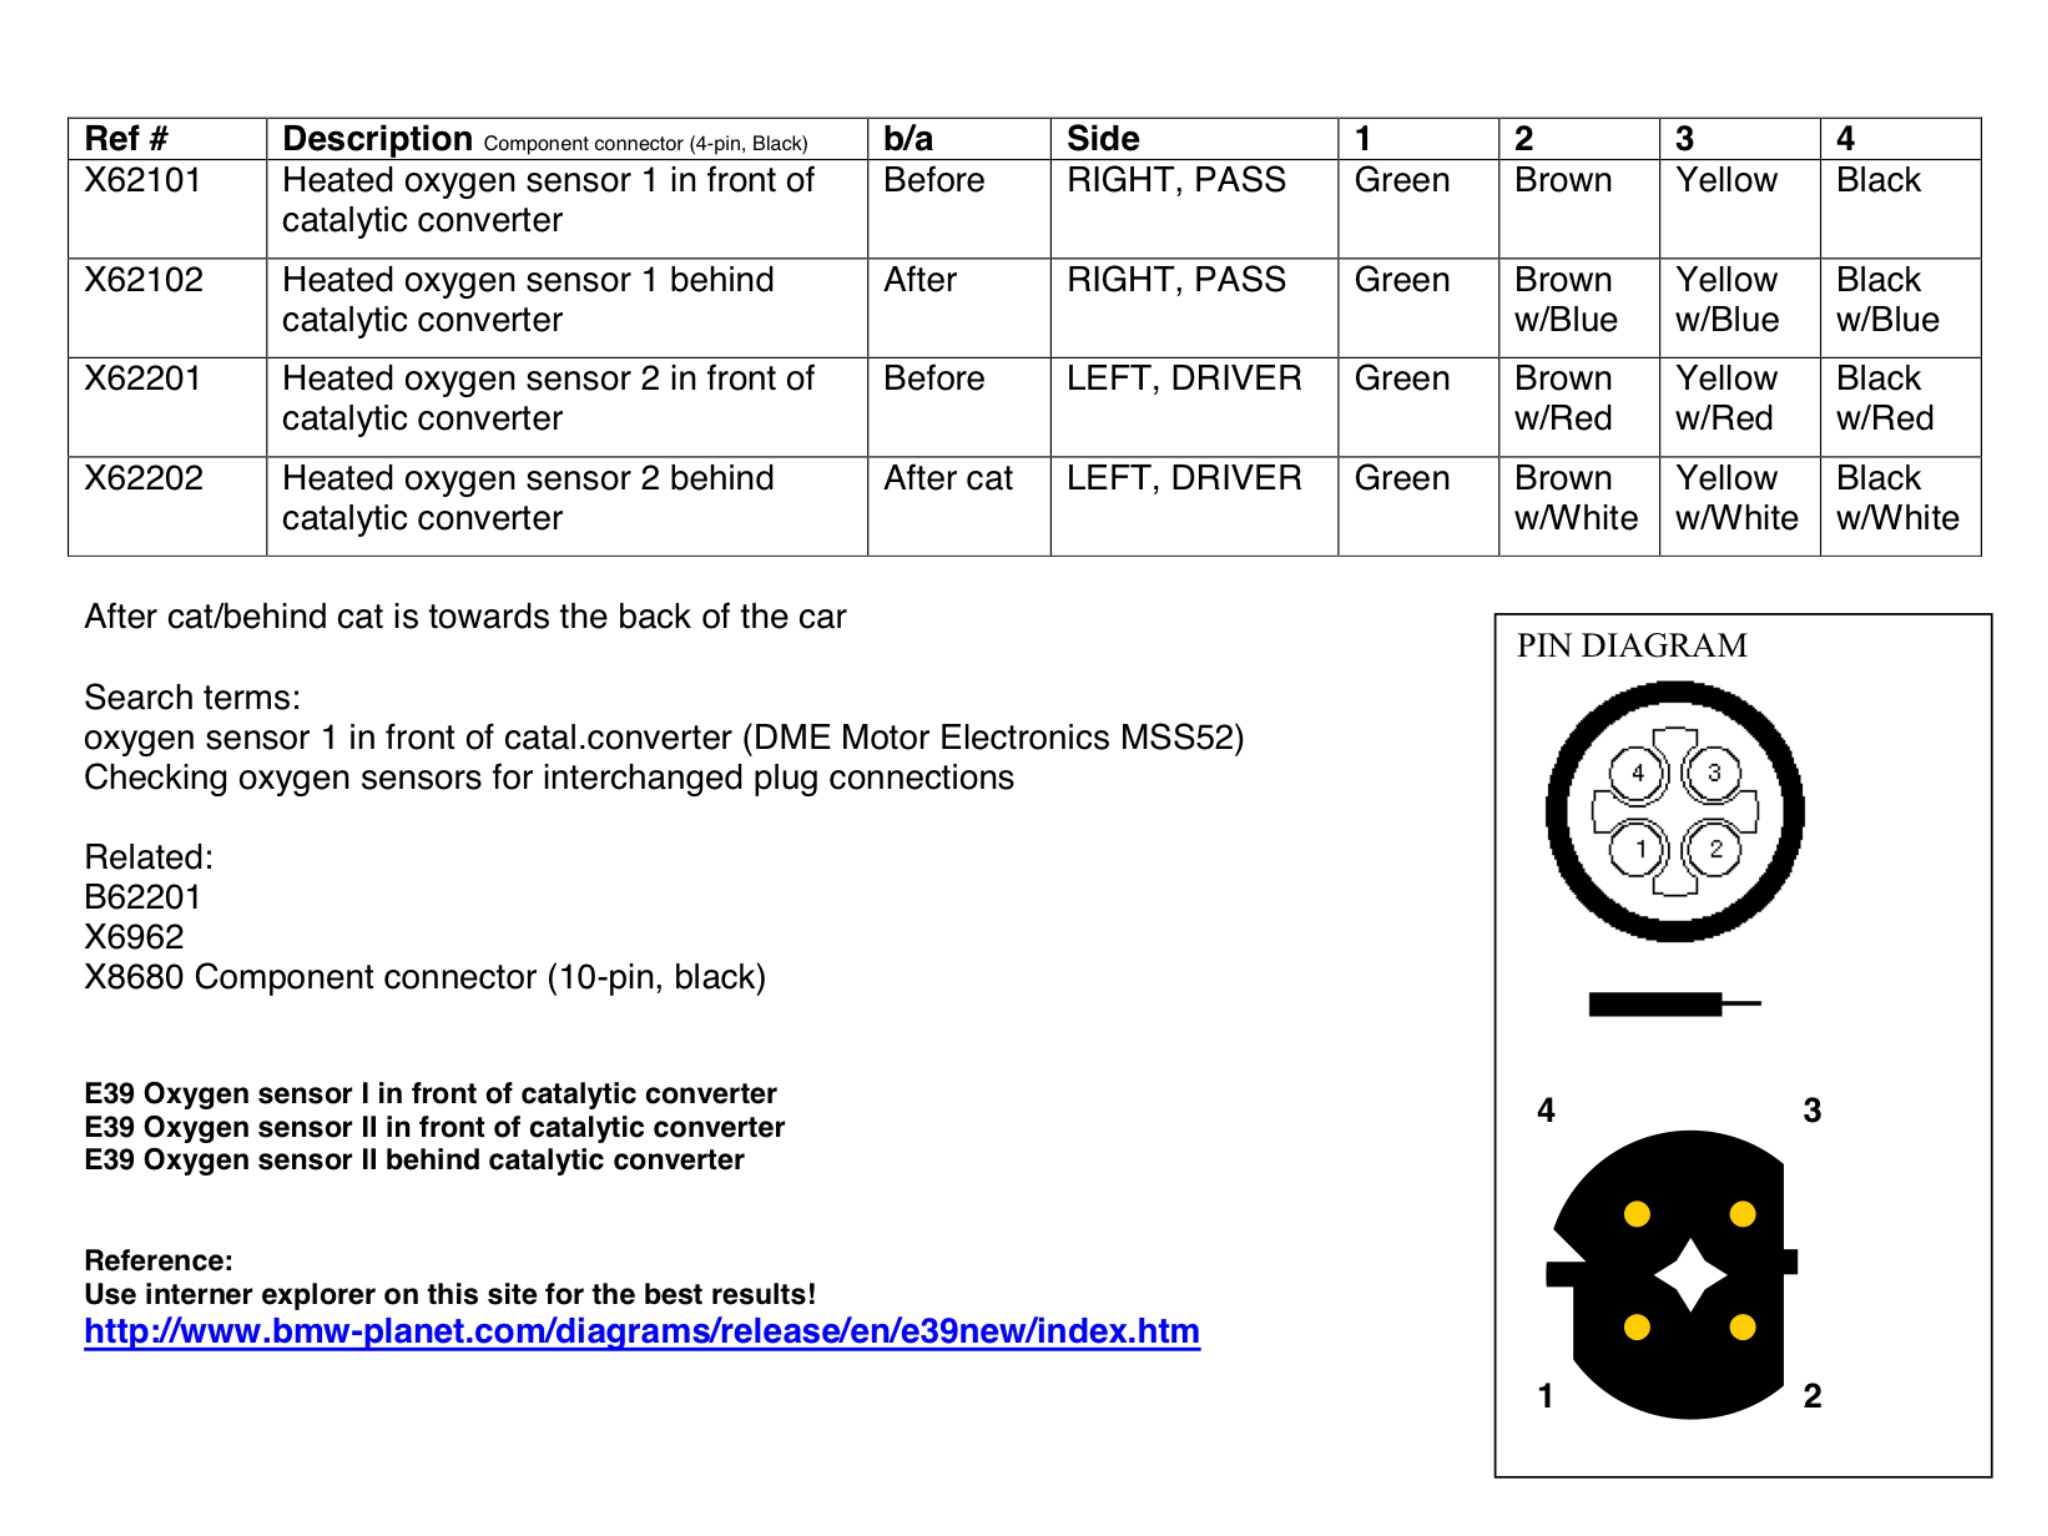 Another O2 Sensor Wiring Thread Image: BMW M5 Rear Sensors Wiring Diagram At Hrqsolutions.co